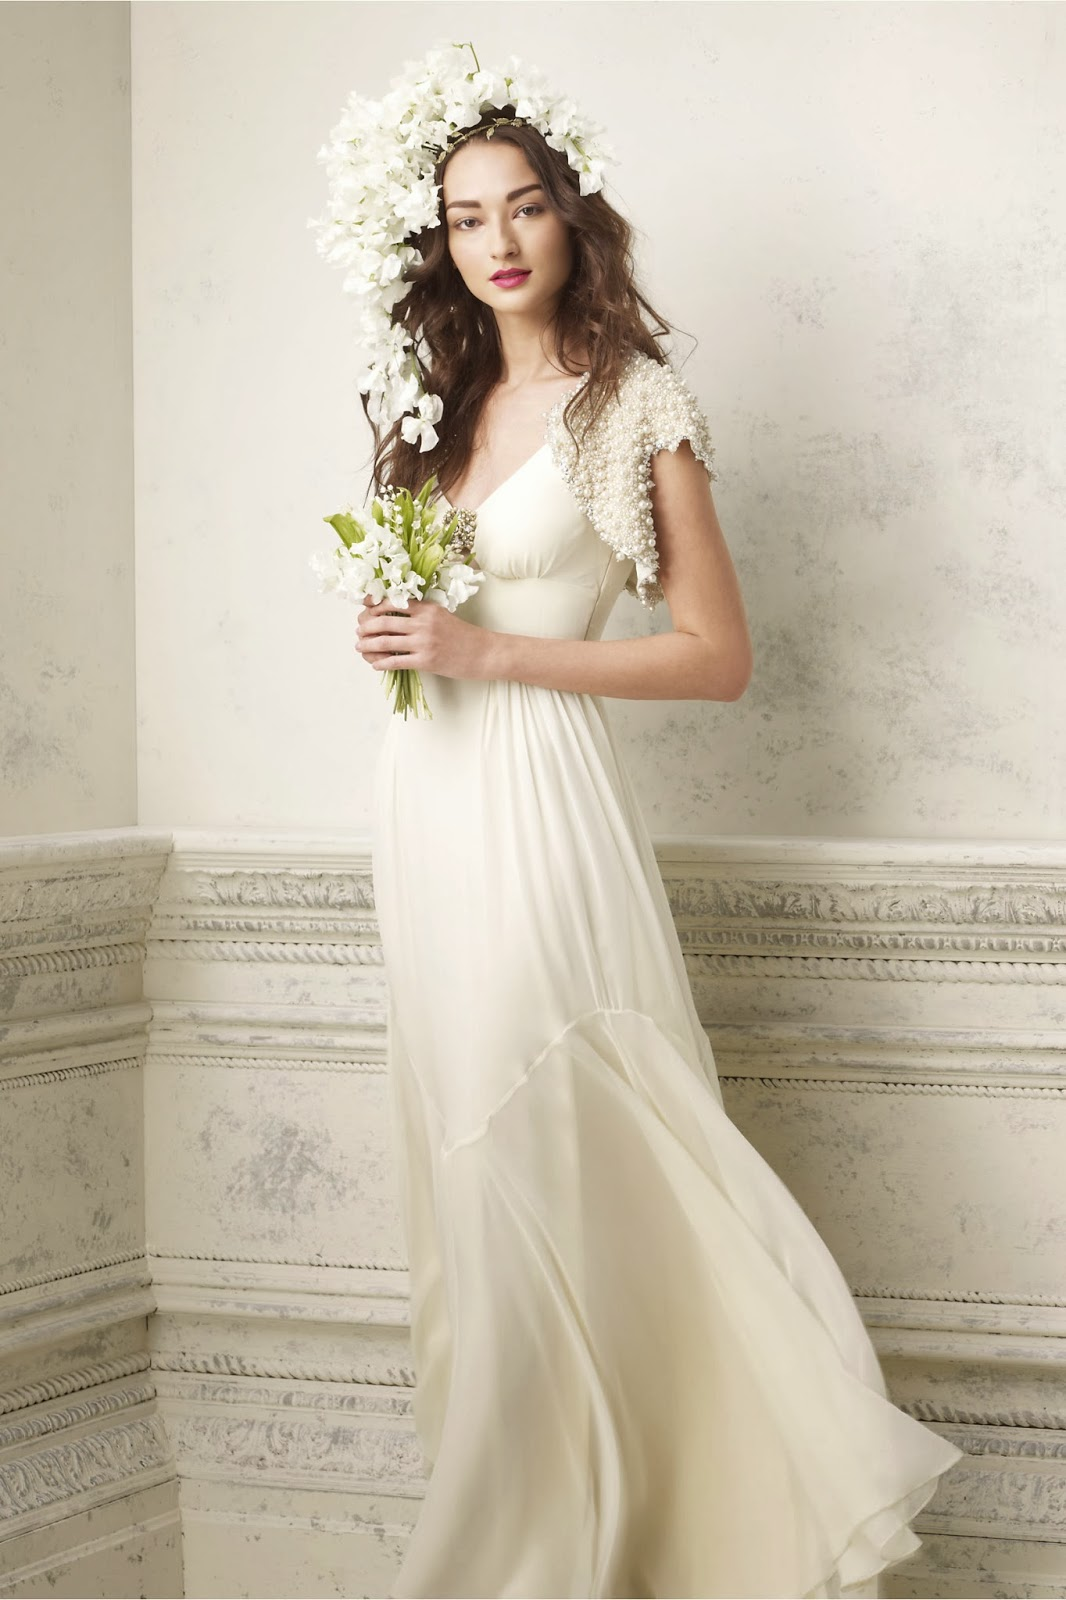 Bride Gowns Wedding Dress Find Elegant Simple Wedding Dress